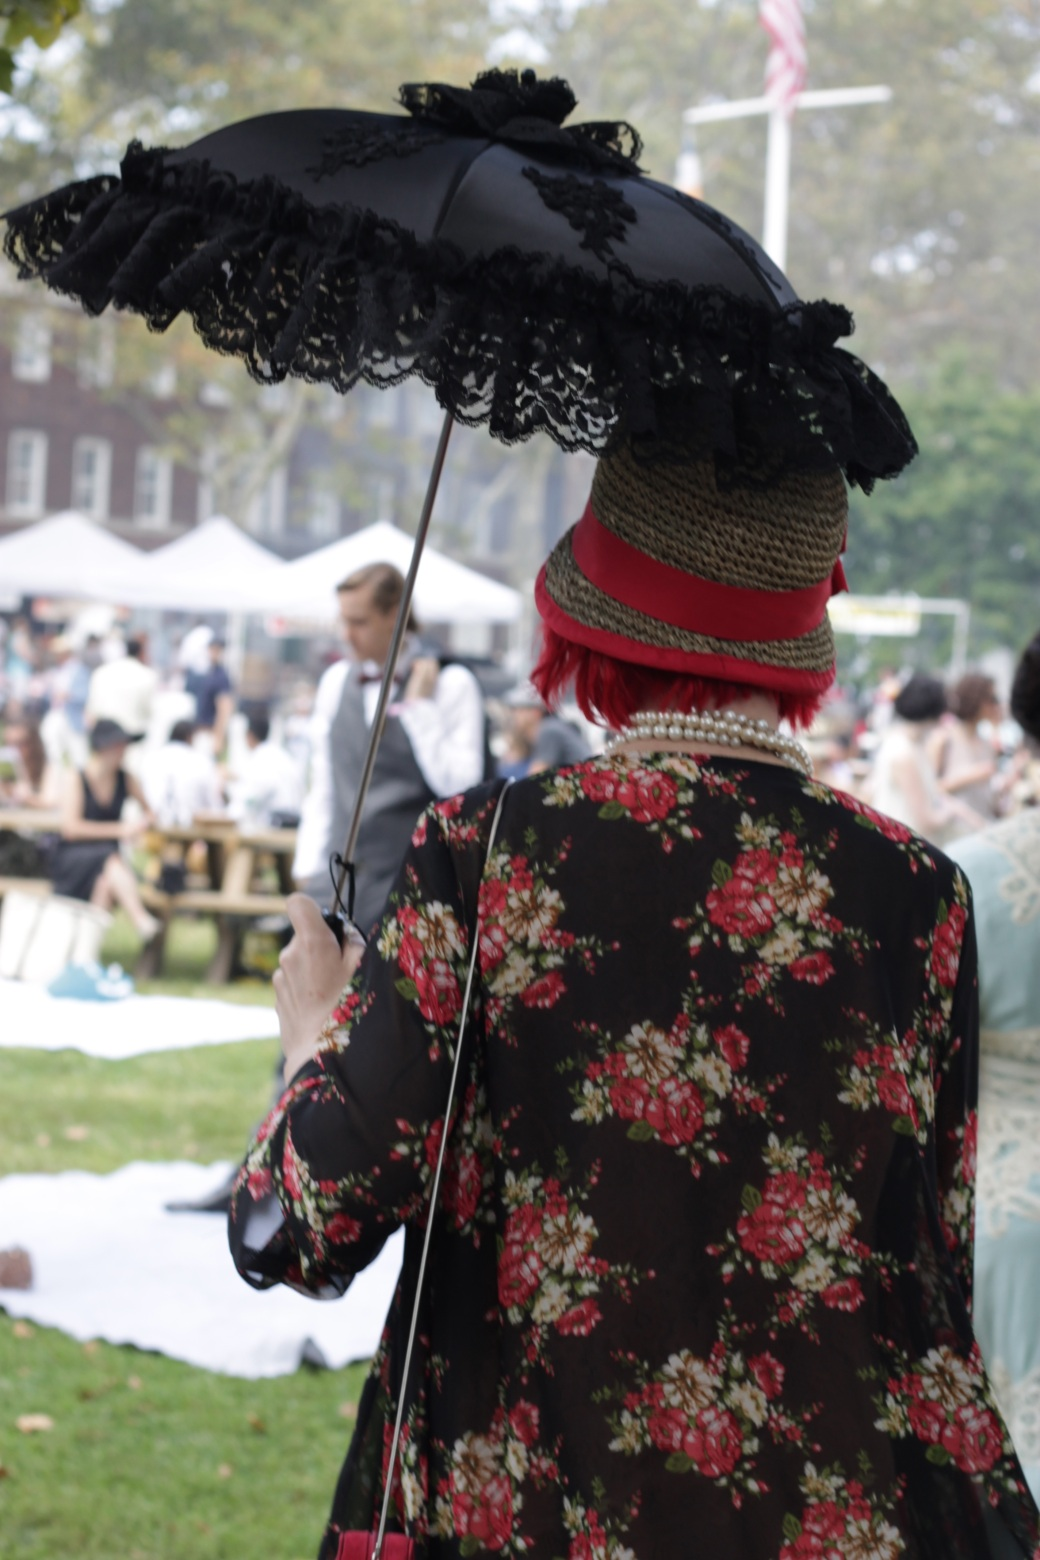 new york city governors island jazz age lawn party august 17 2014 26